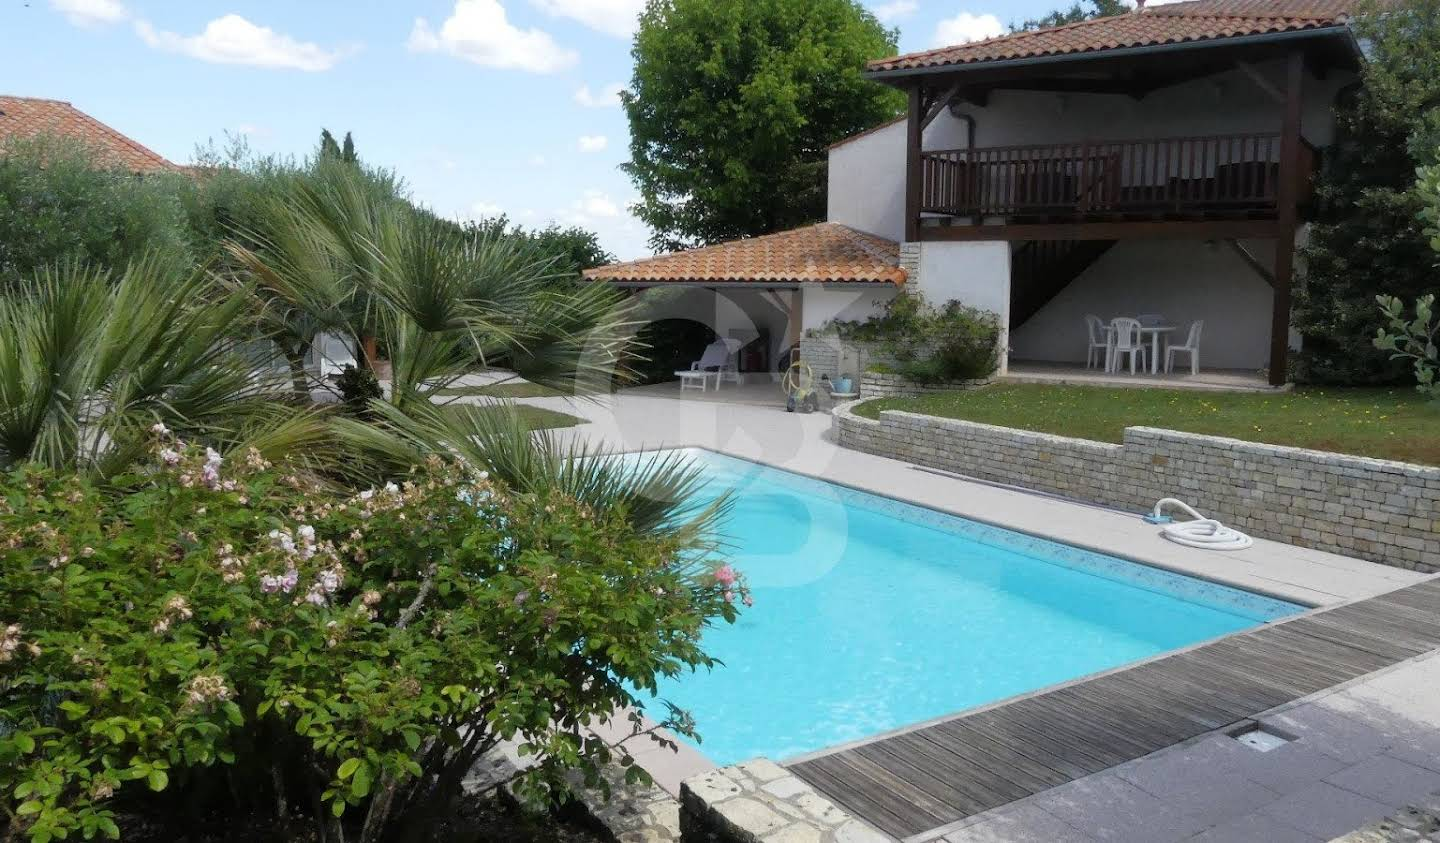 House with pool and garden Saint-Georges-de-Didonne